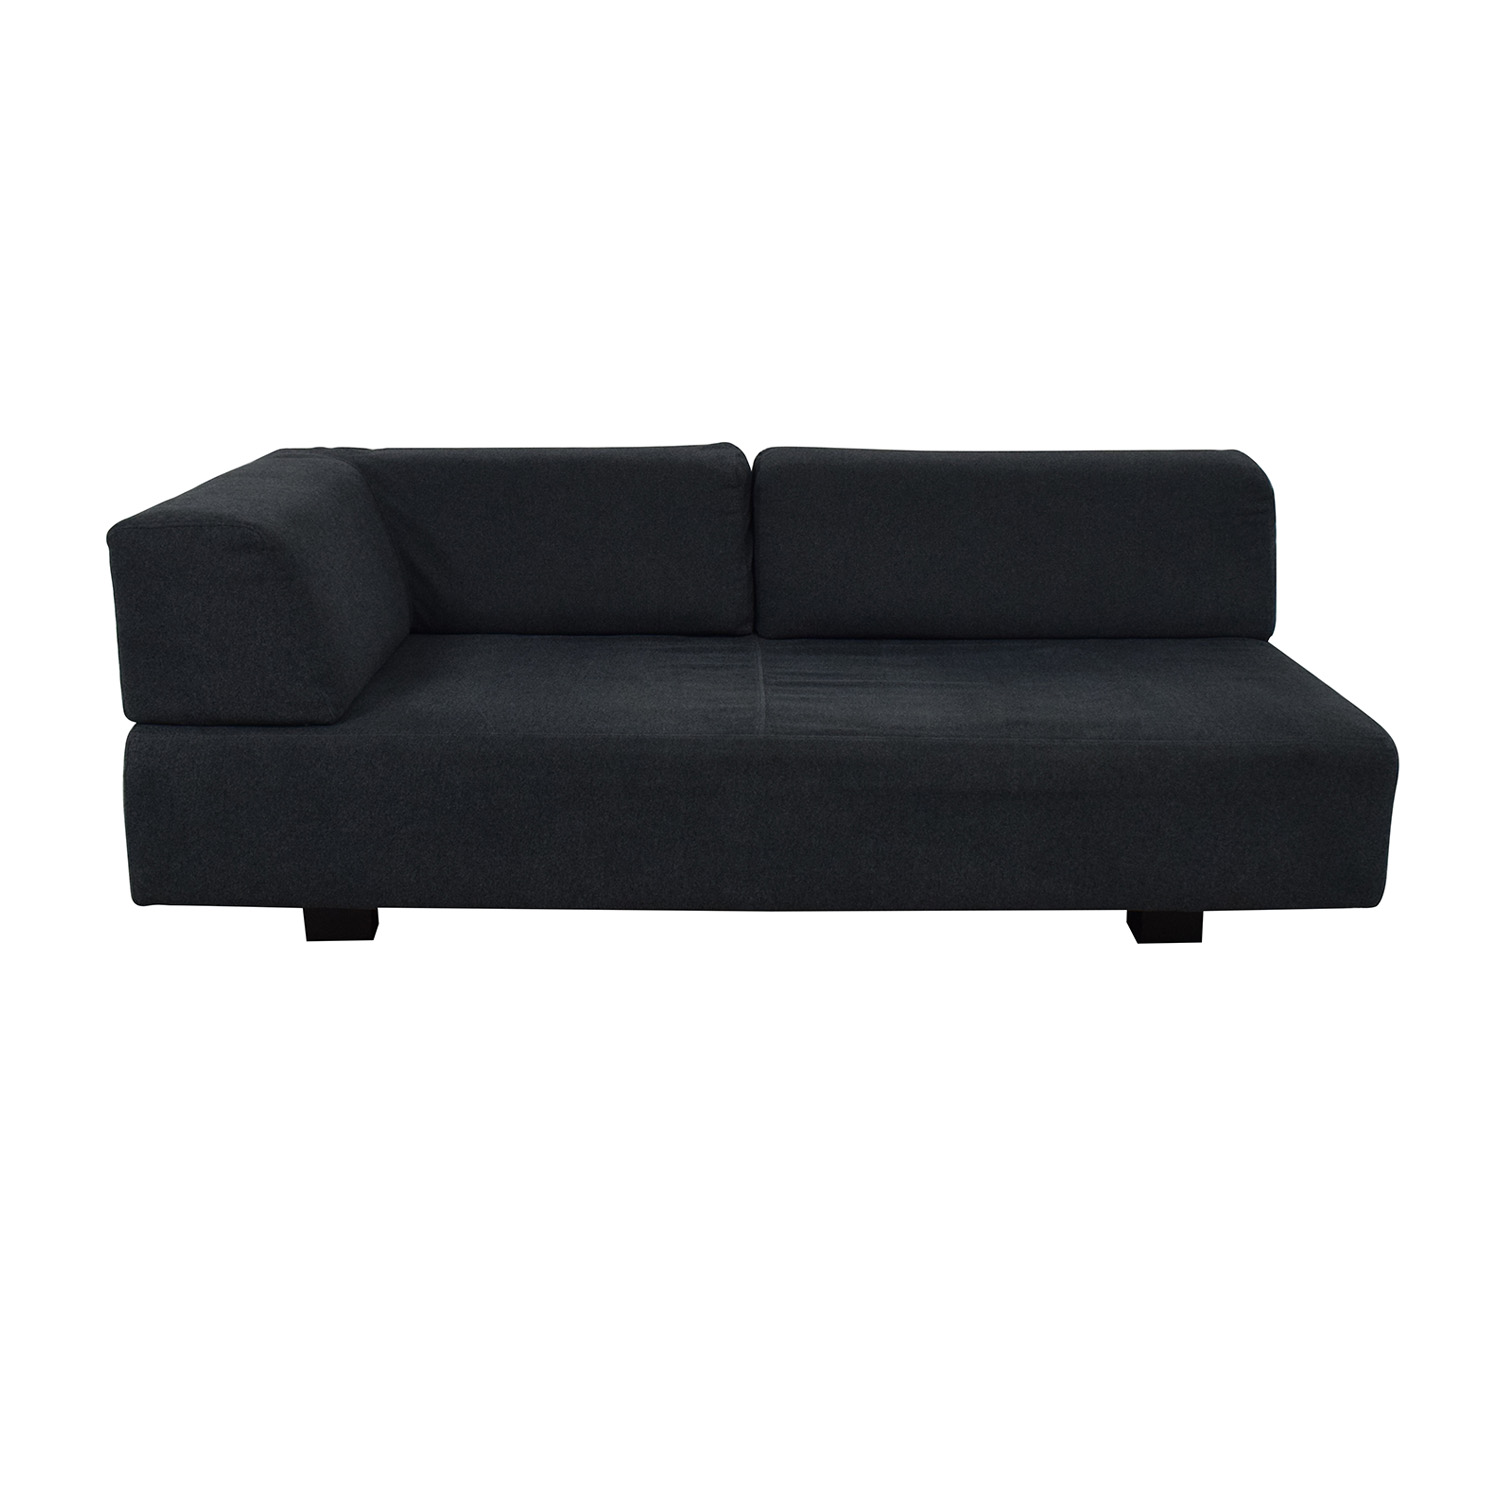 West Elm West Elm Tillary Couch on sale